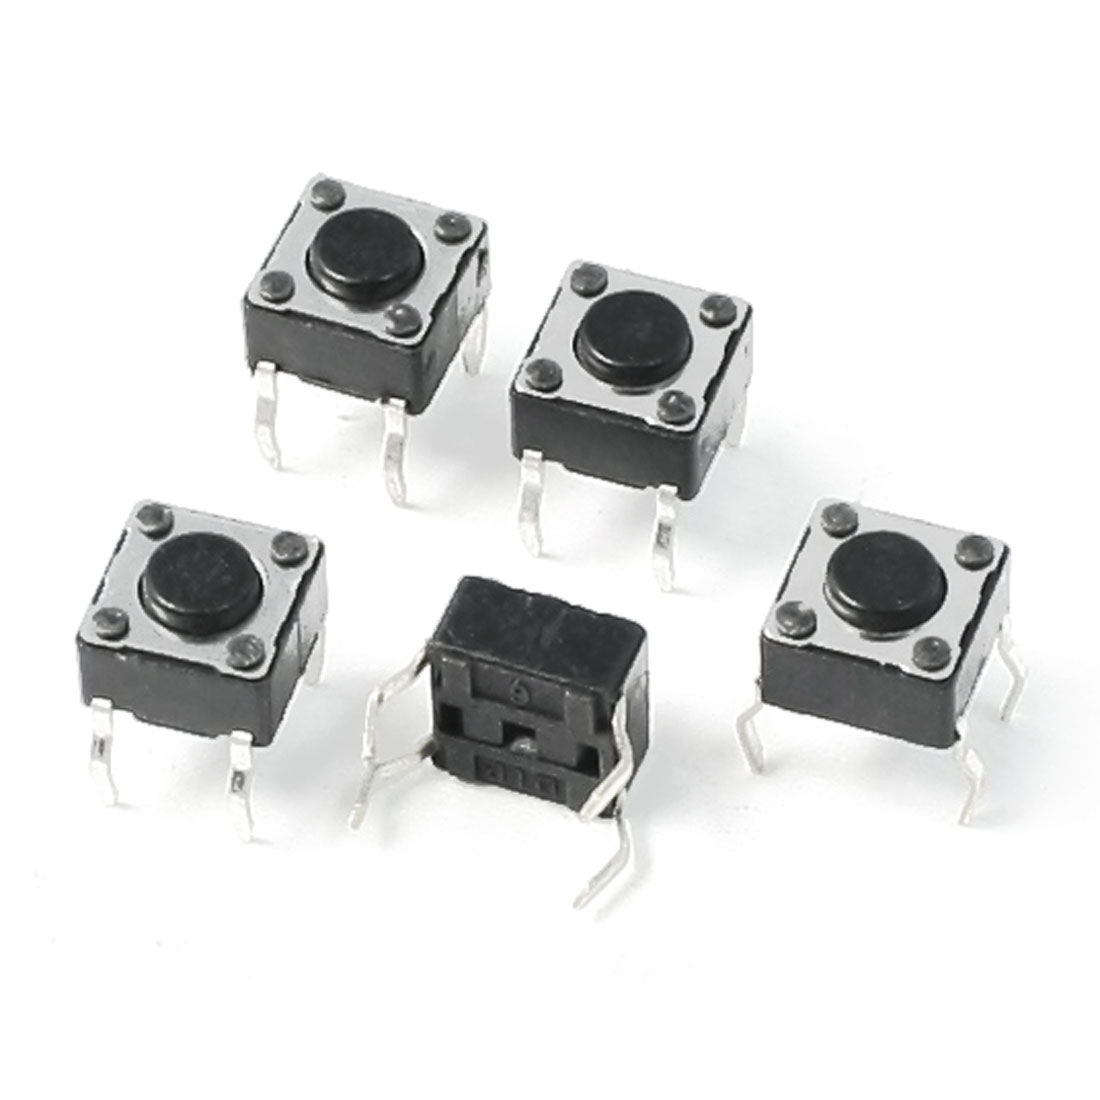 5PCS Home Appliance Spare Part Momentary Tact Switch 4.3mmx6.2mmx6.2mm DC12V 0.2A